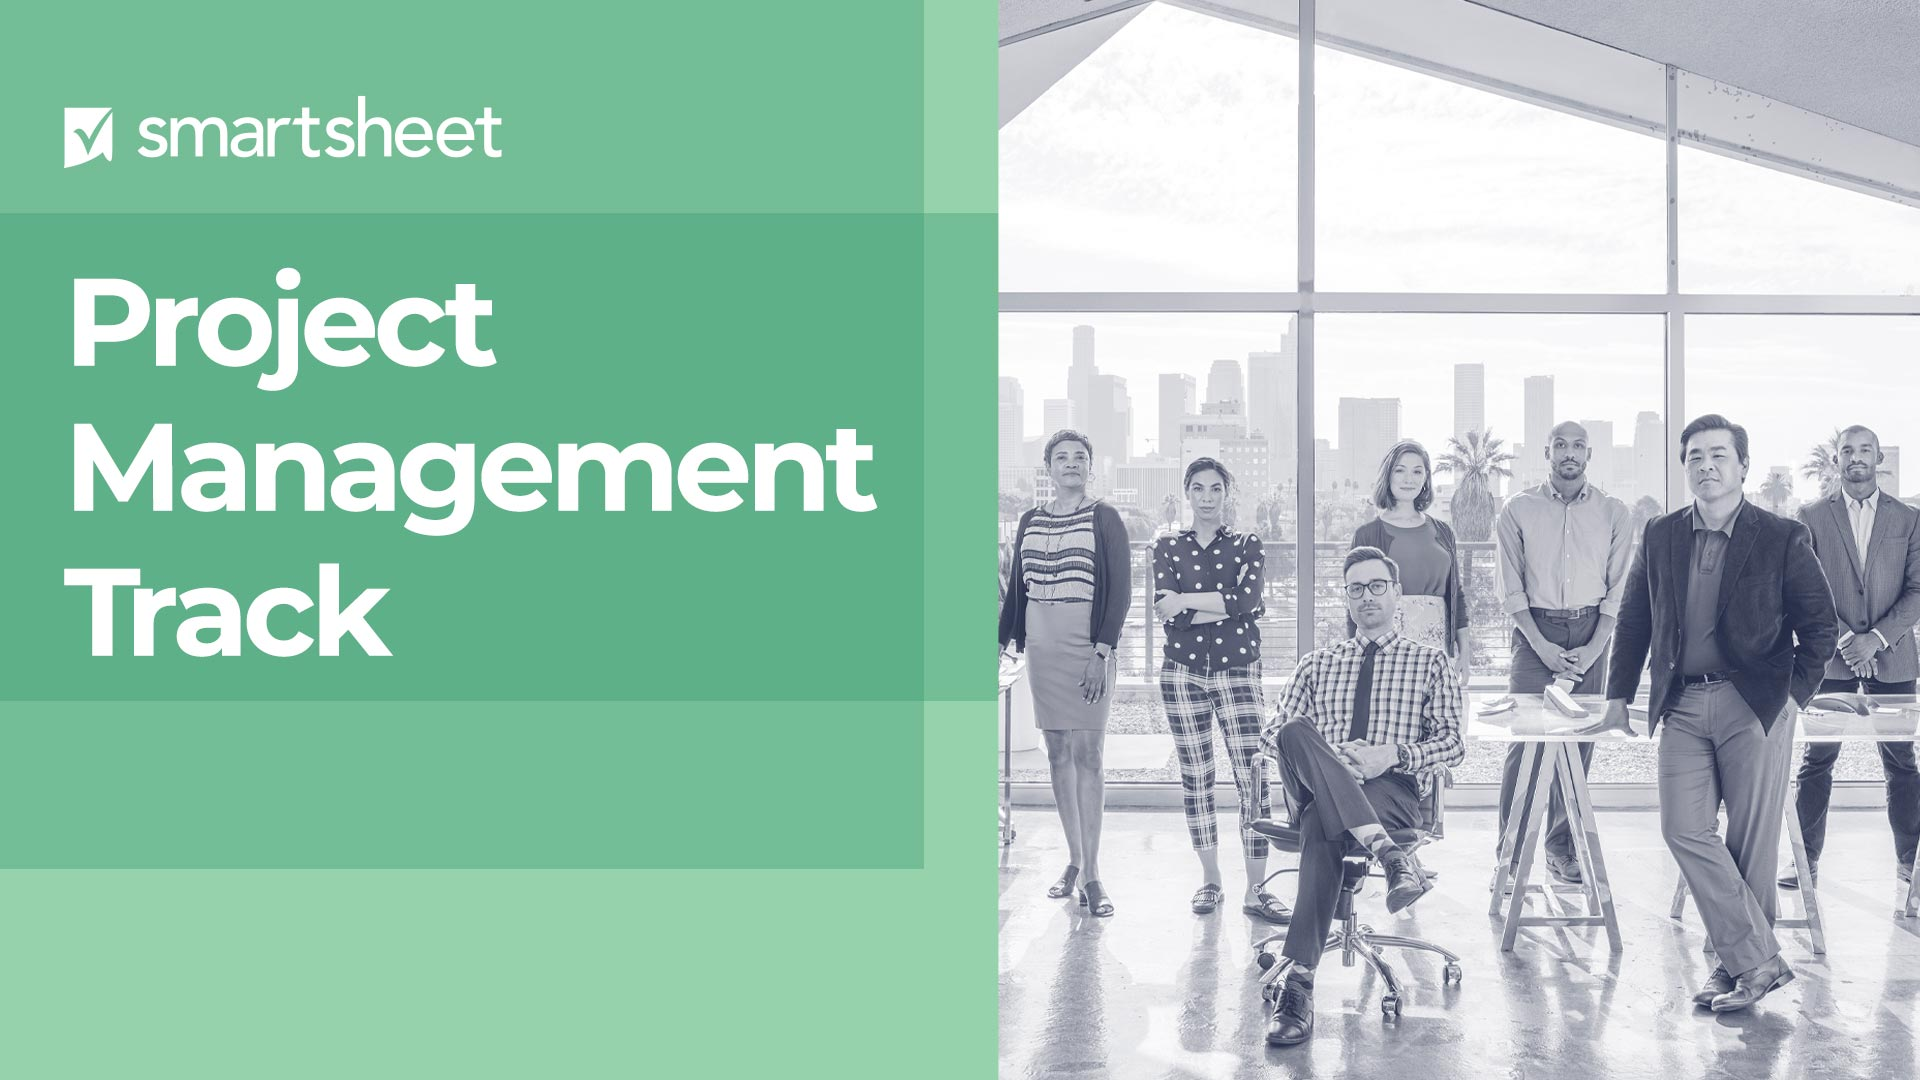 Instructions for Navigating the Project Management Track